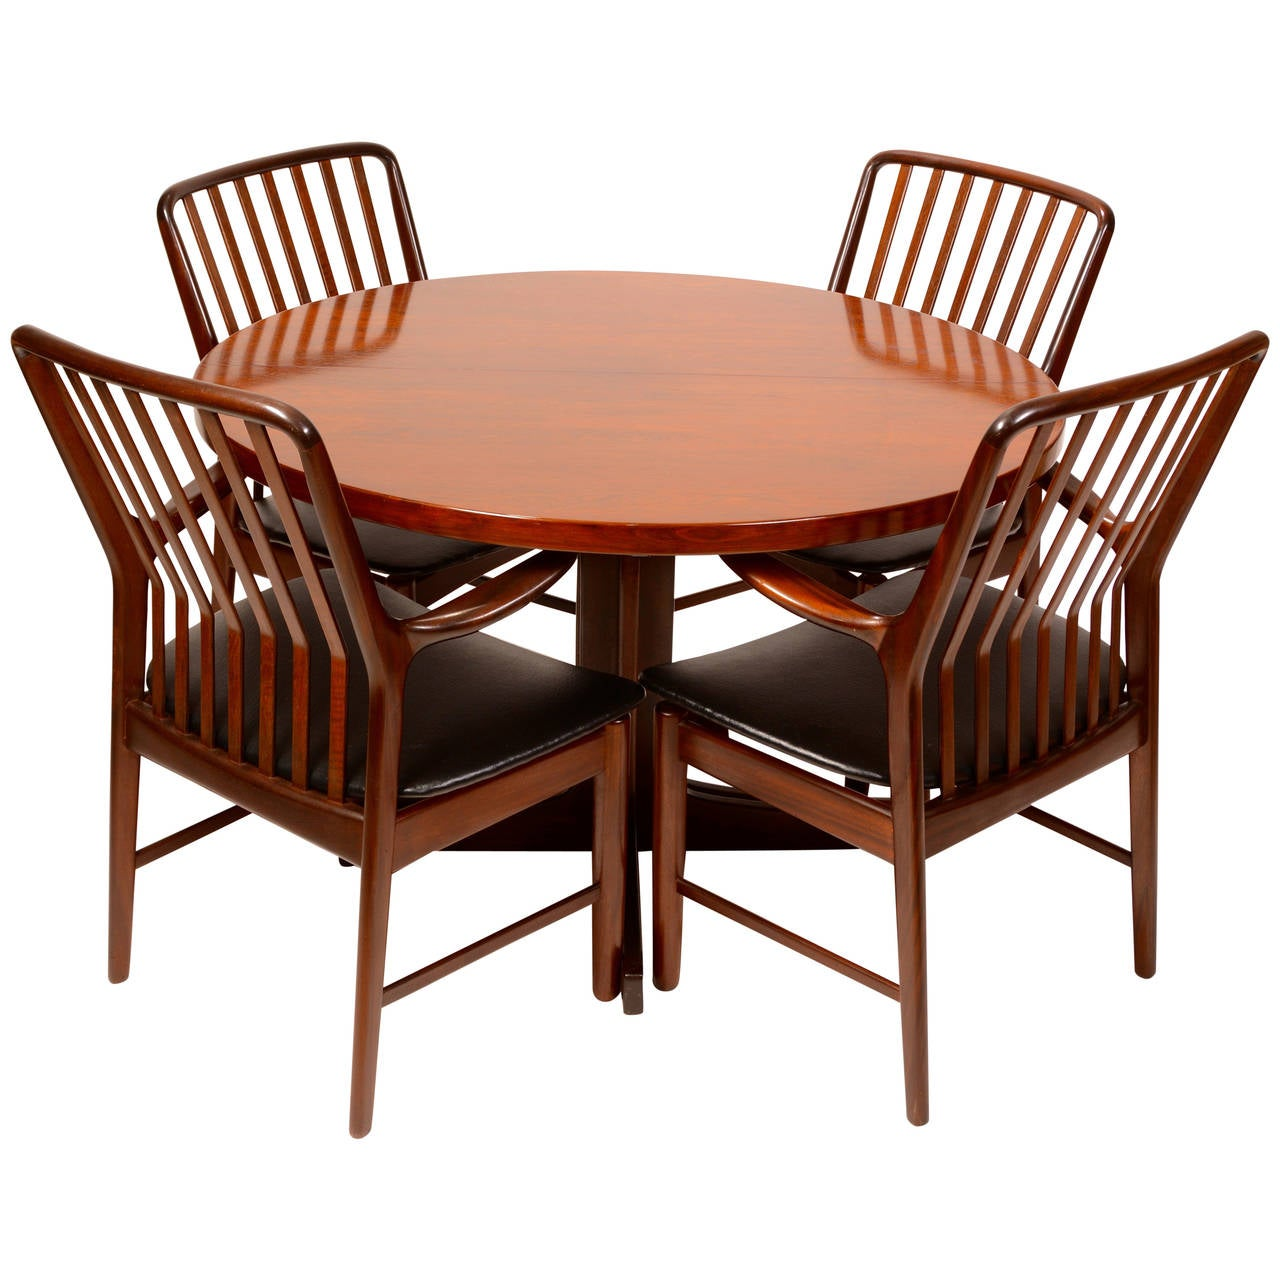 Rosewood Dining Table Mid Century Modern Skovmand And Andersen For Moreddi Rosewood